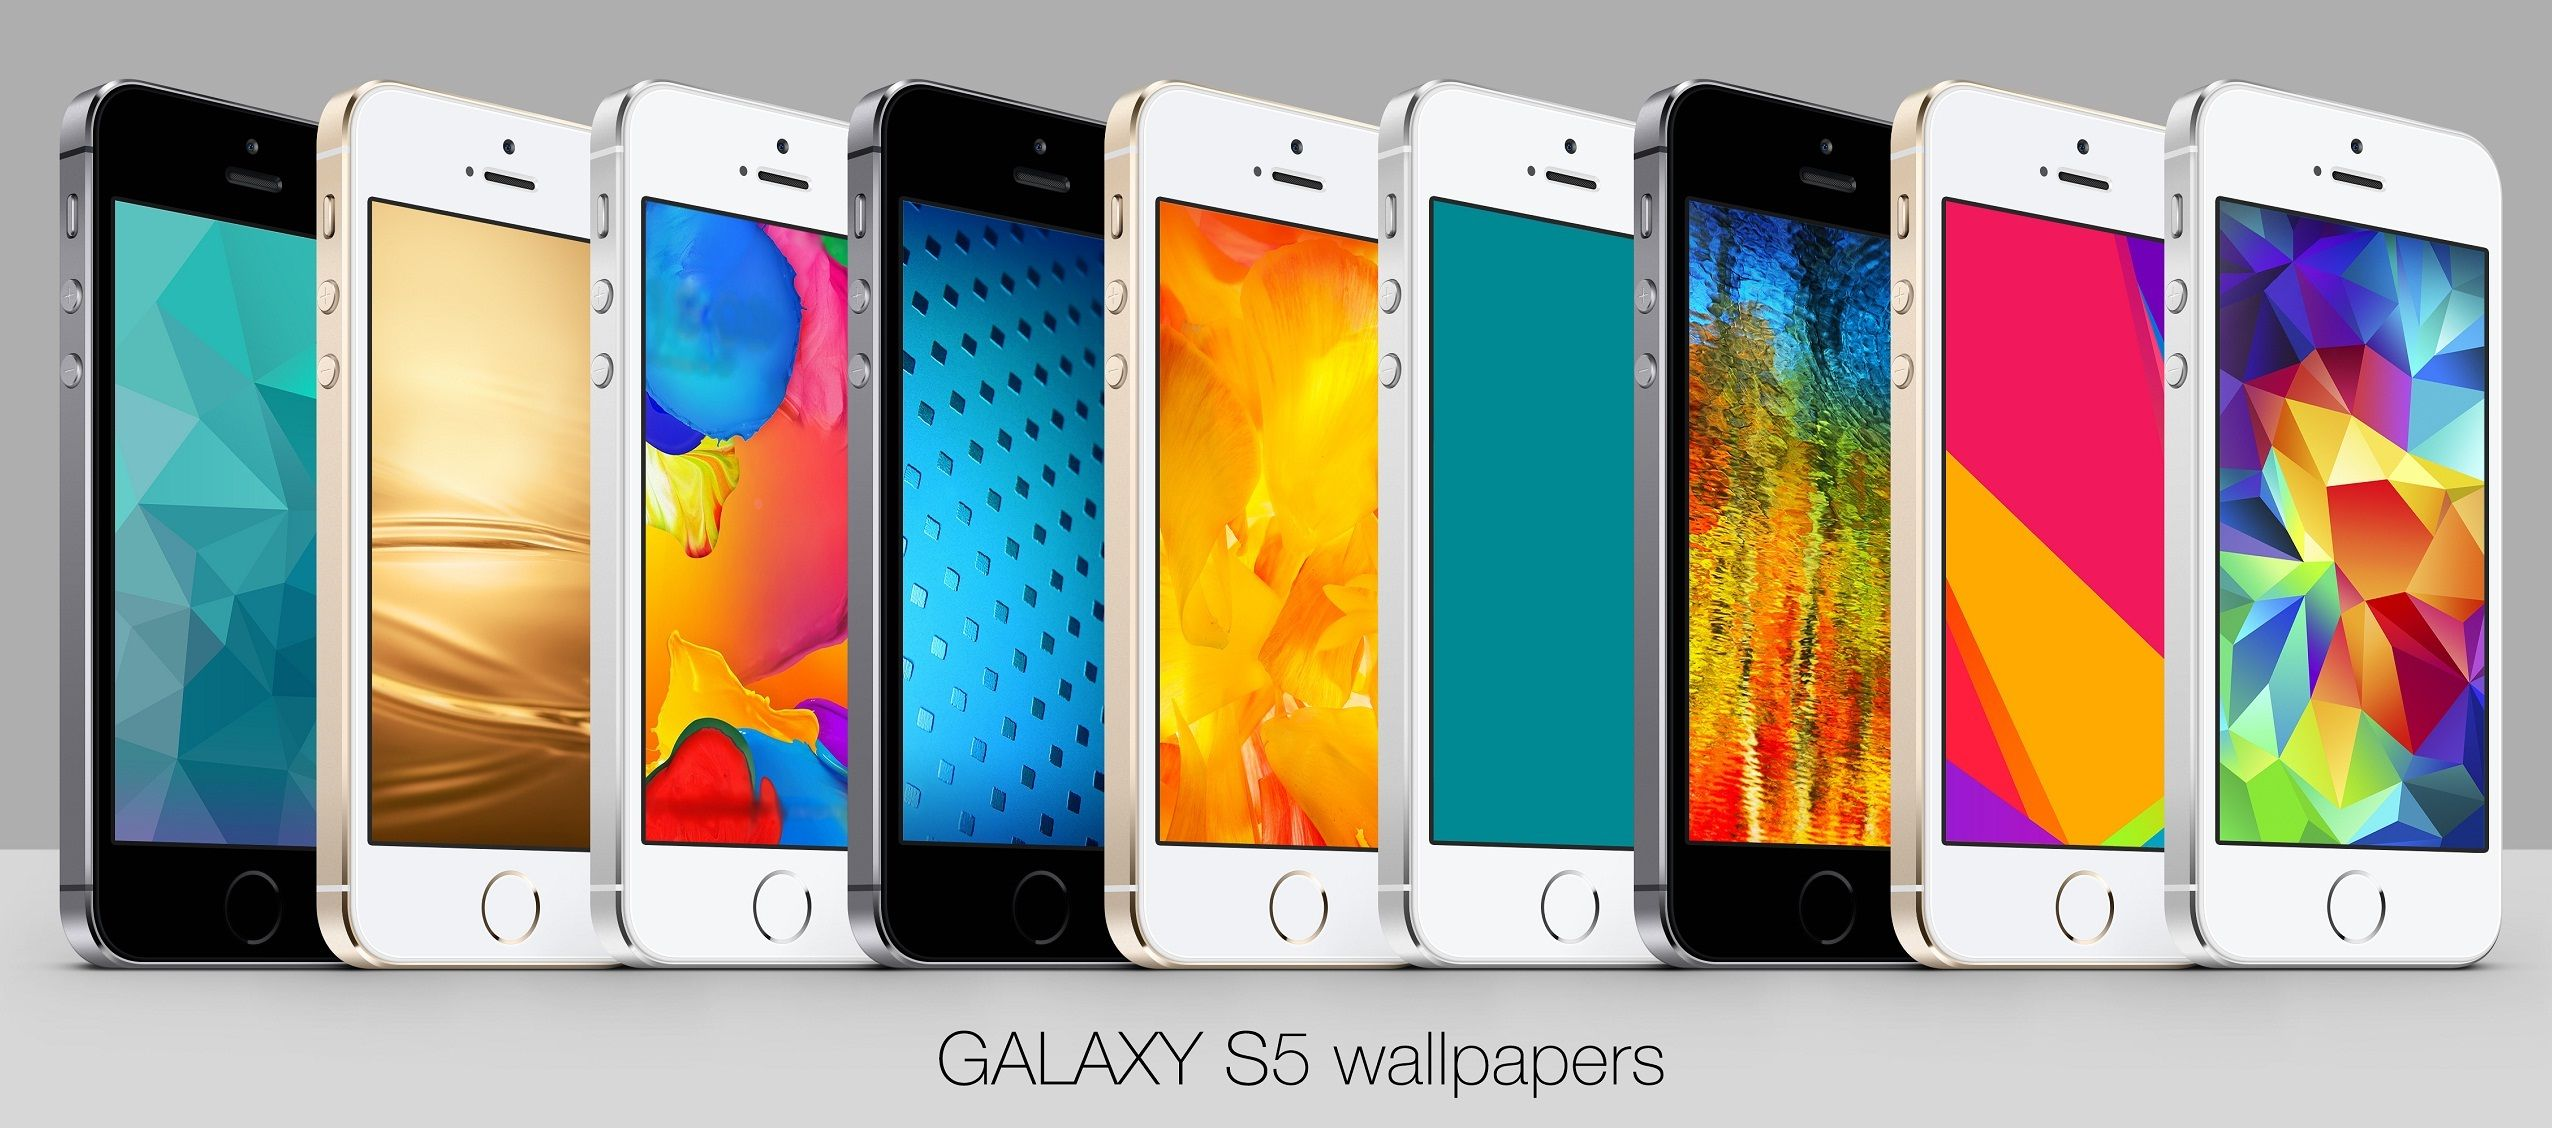 Wallpaper Gallery Of Samsung Galaxy S5 Deviantart Wallpapers And